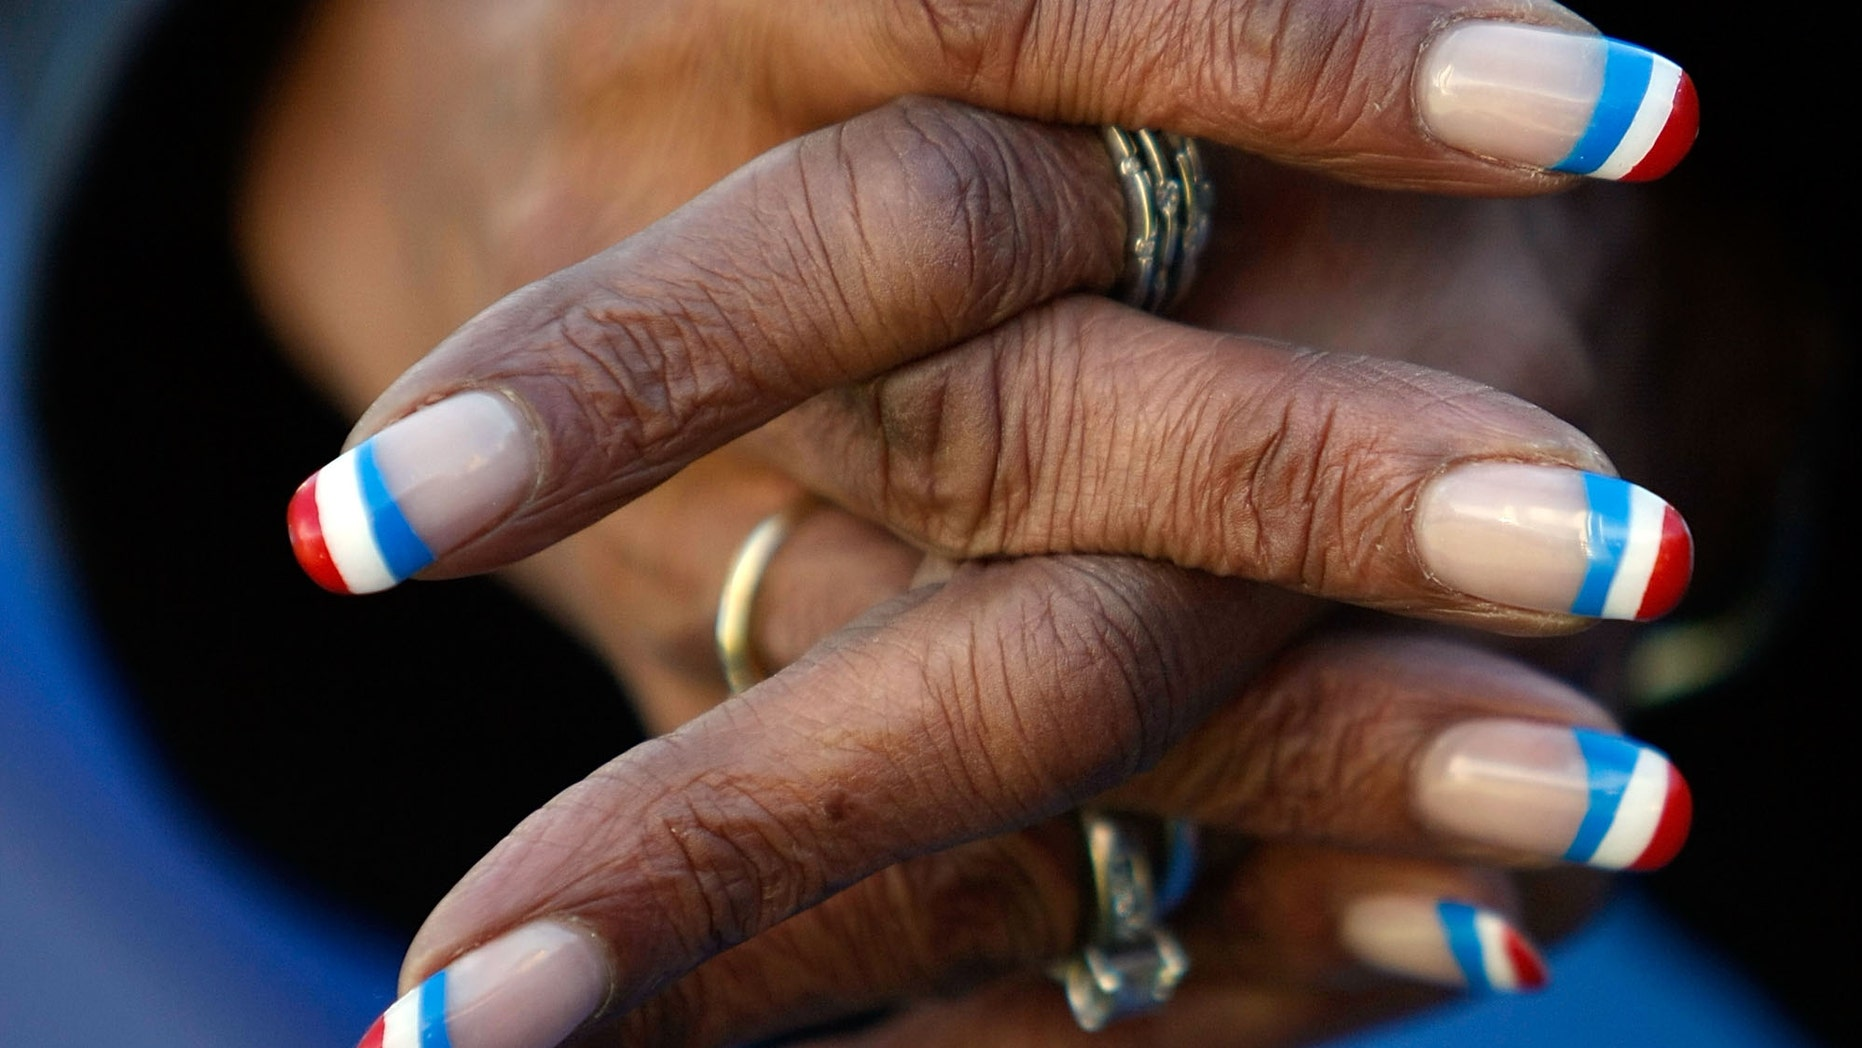 RALEIGH, NC - OCTOBER 29:  A women with finger nails painted red, white and blue listens to U.S. Sen. Barack Obama (D-IL) speak at a campaign rally at Hallifax Mall October 29, 2008 in Raleigh, North Carolina. With less than a week to go before election day, Sen. Obama continues to campaign in battleground states.  (Photo by Joe Raedle/Getty Images)